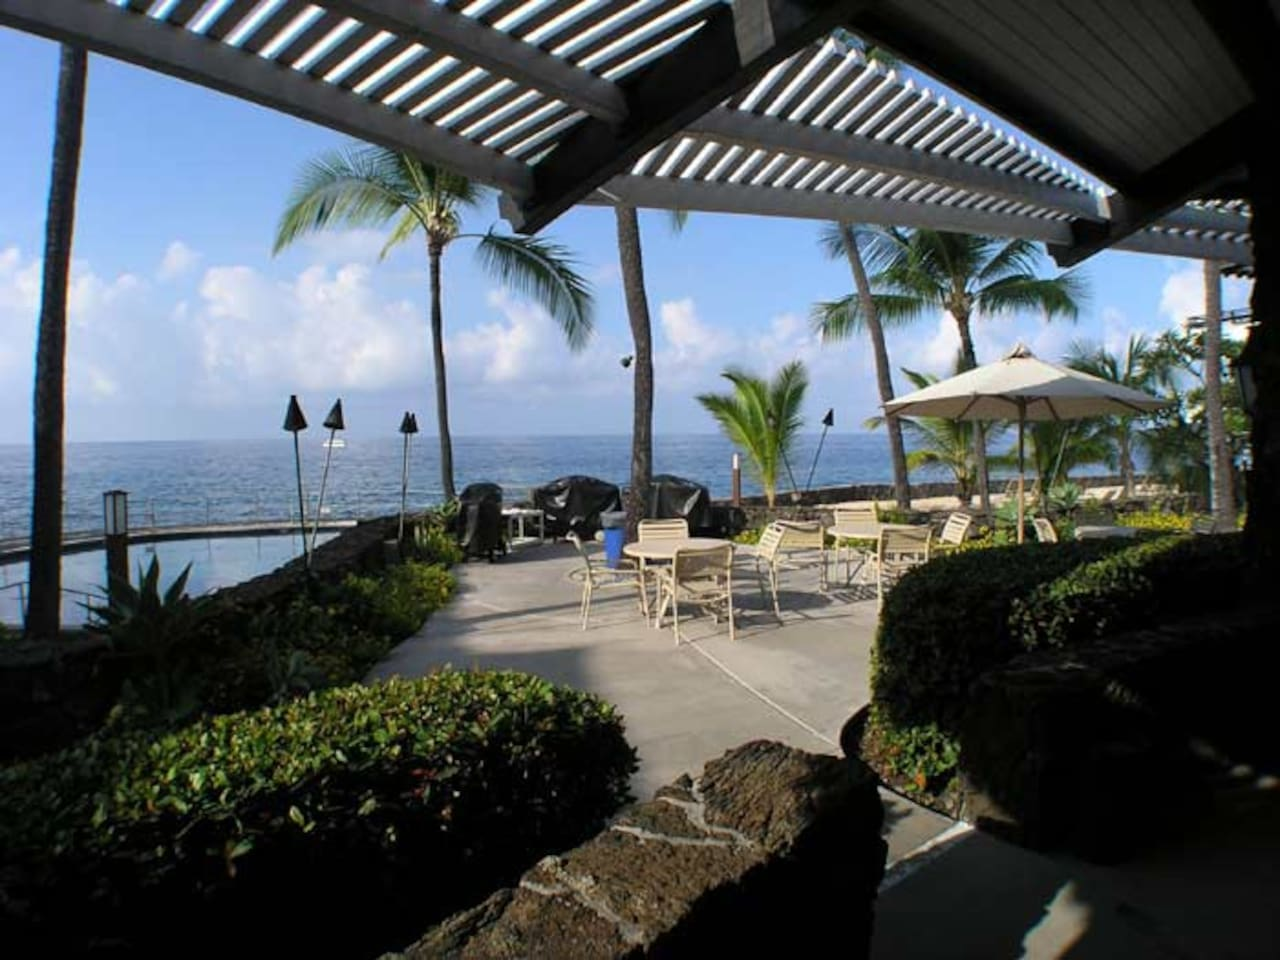 Barbeques and oceanfront dining area